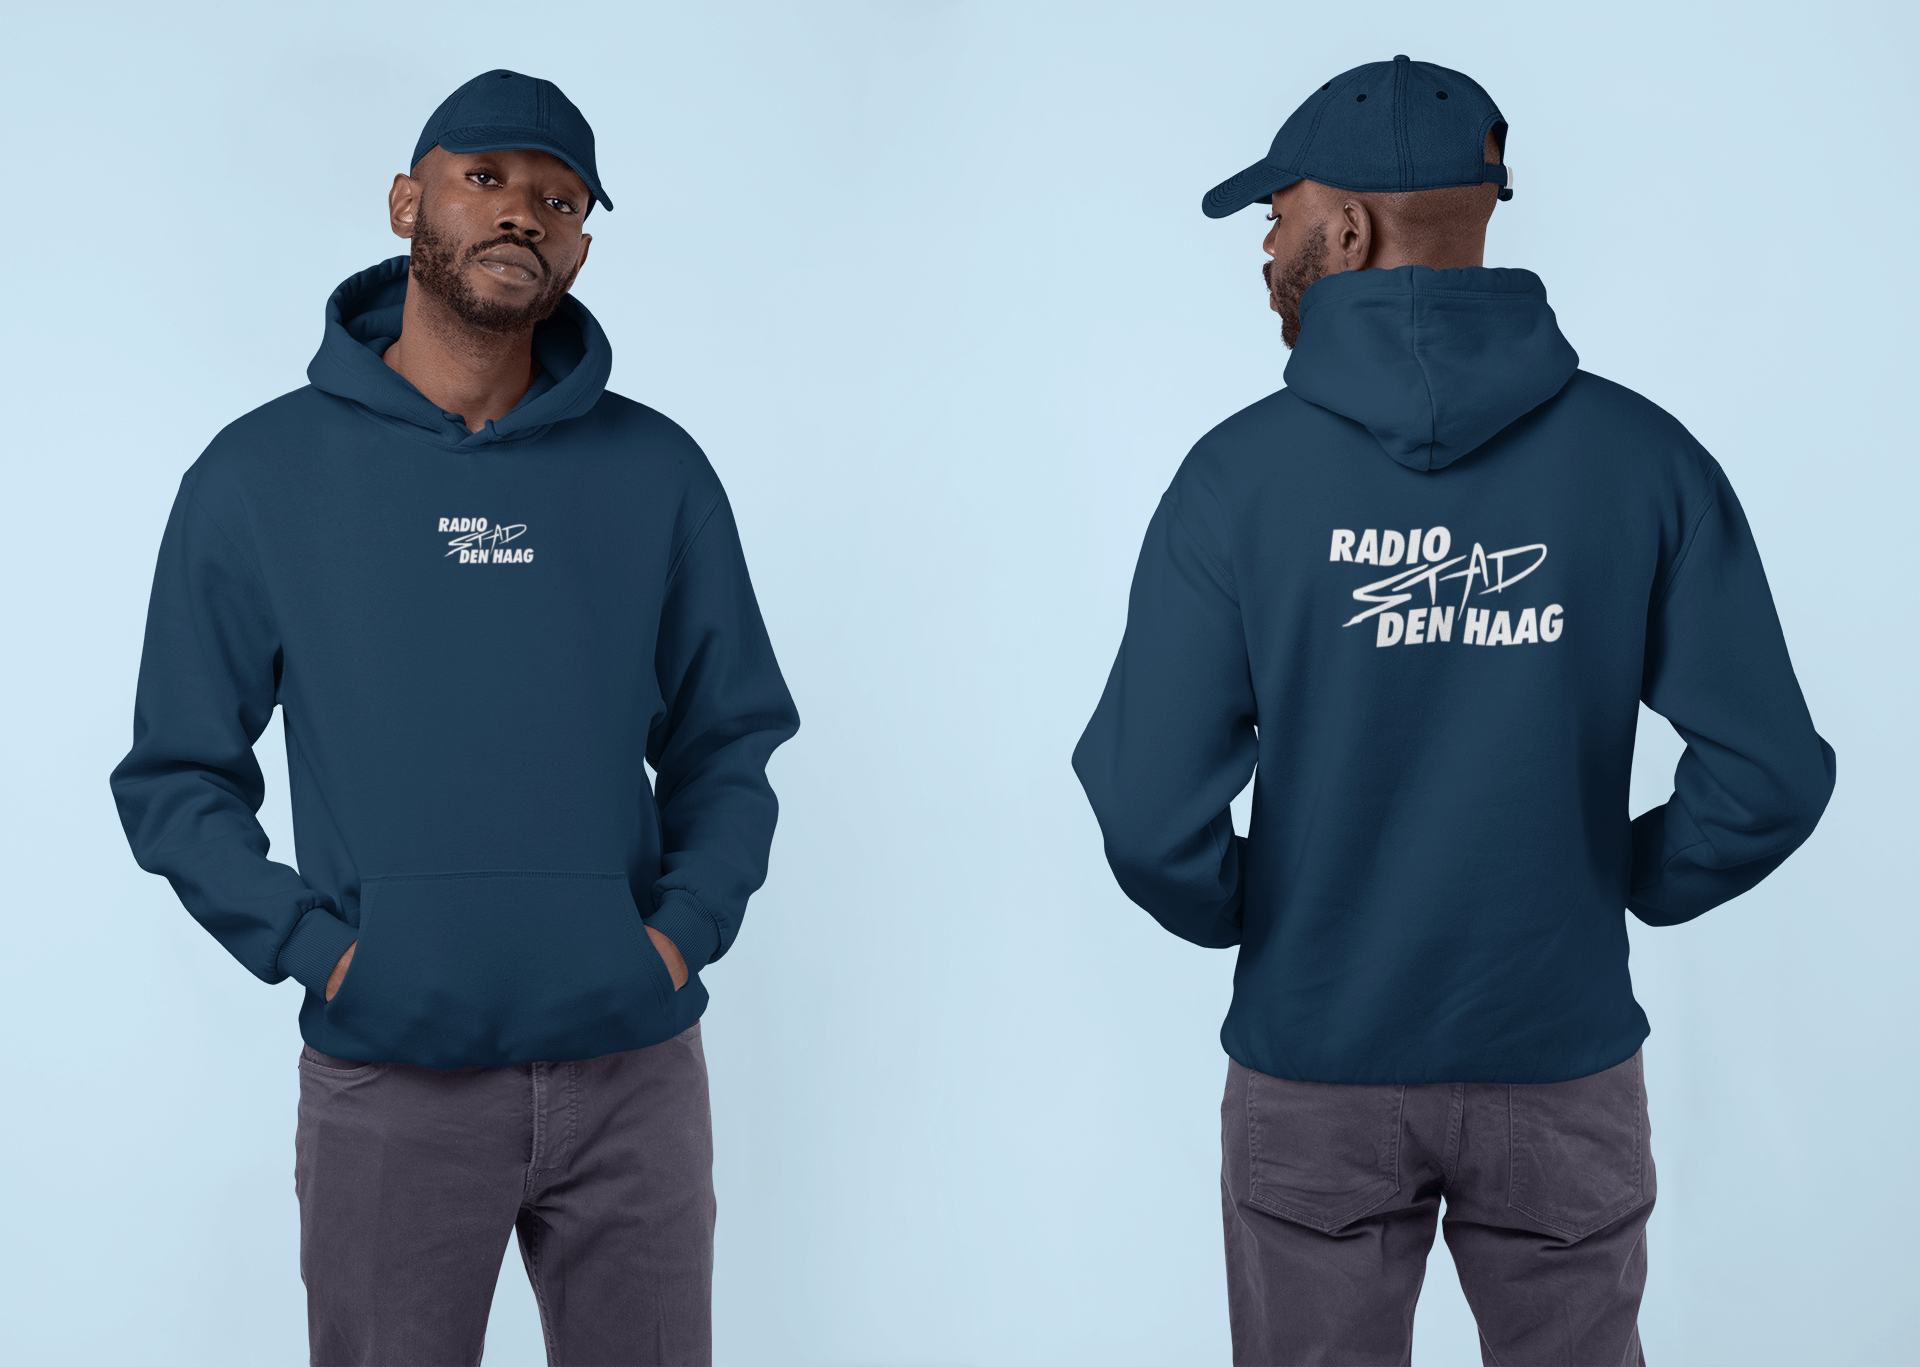 both-sides-hoodie-mockup-of-a-man-wearing-a-hat-in-a-studio-29642